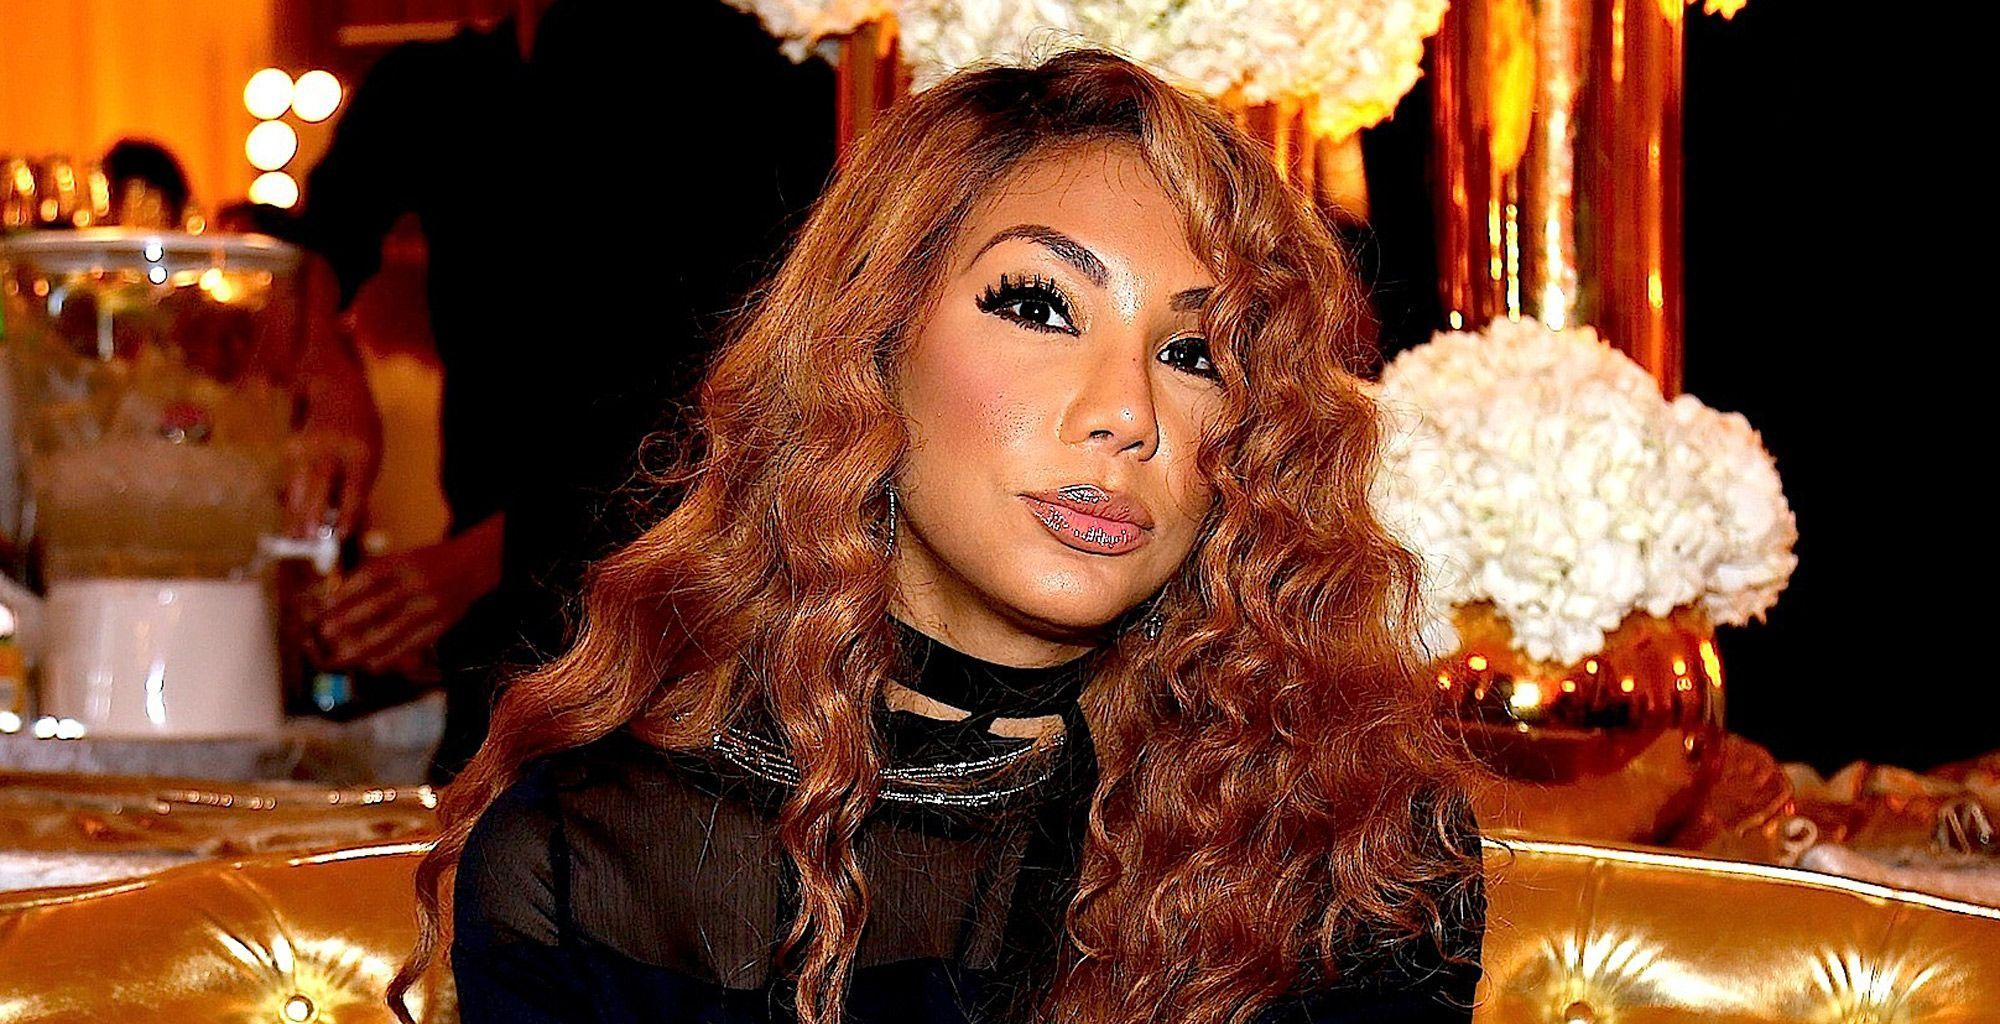 Tamar Braxton Shares A Last Minute Gift Guide For Fans - See Her Video